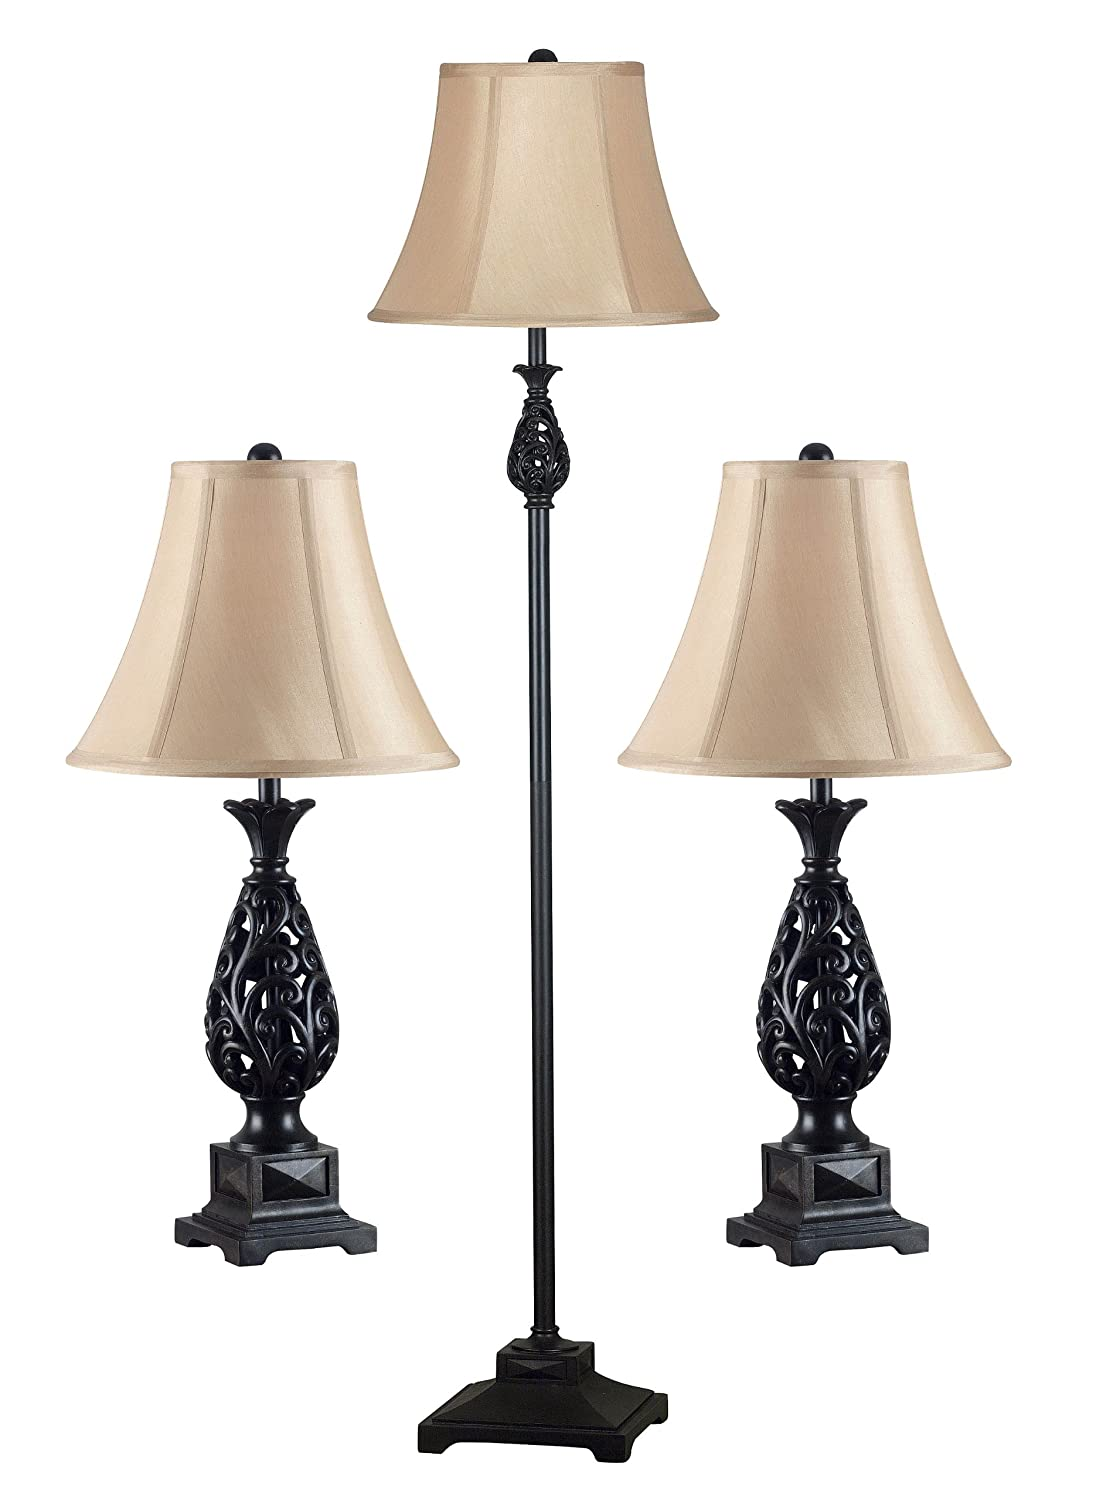 Kenroy home 21017gfbr prescott table and floor lamp 3 pack kenroy home 21017gfbr prescott table and floor lamp 3 pack golden flecked bronze amazon aloadofball Image collections